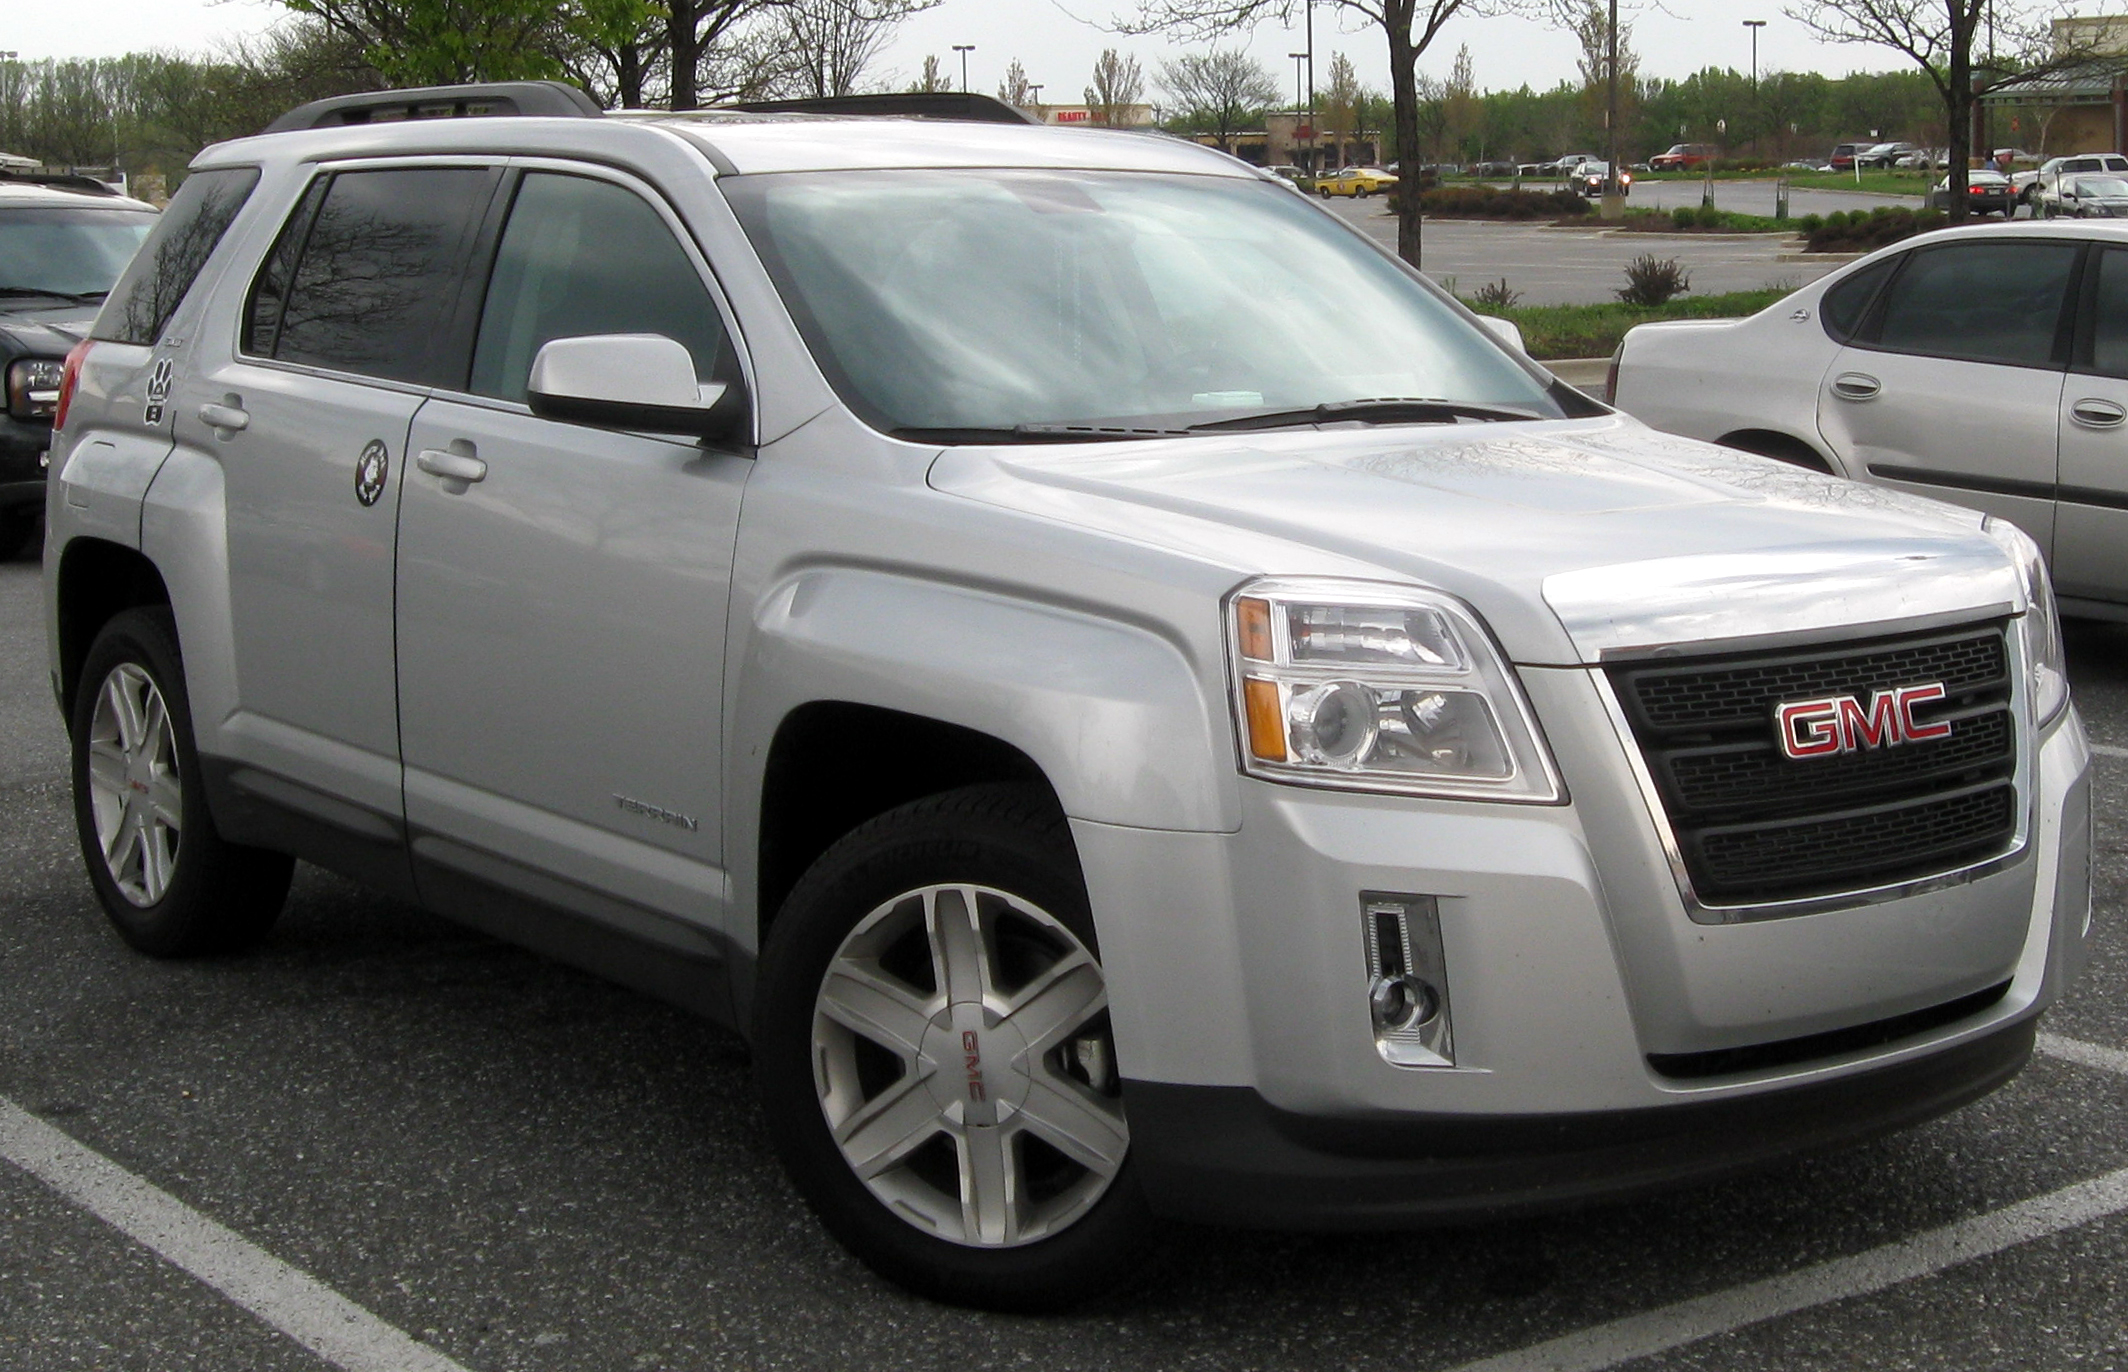 Gmc Acadia Used Car Reviews